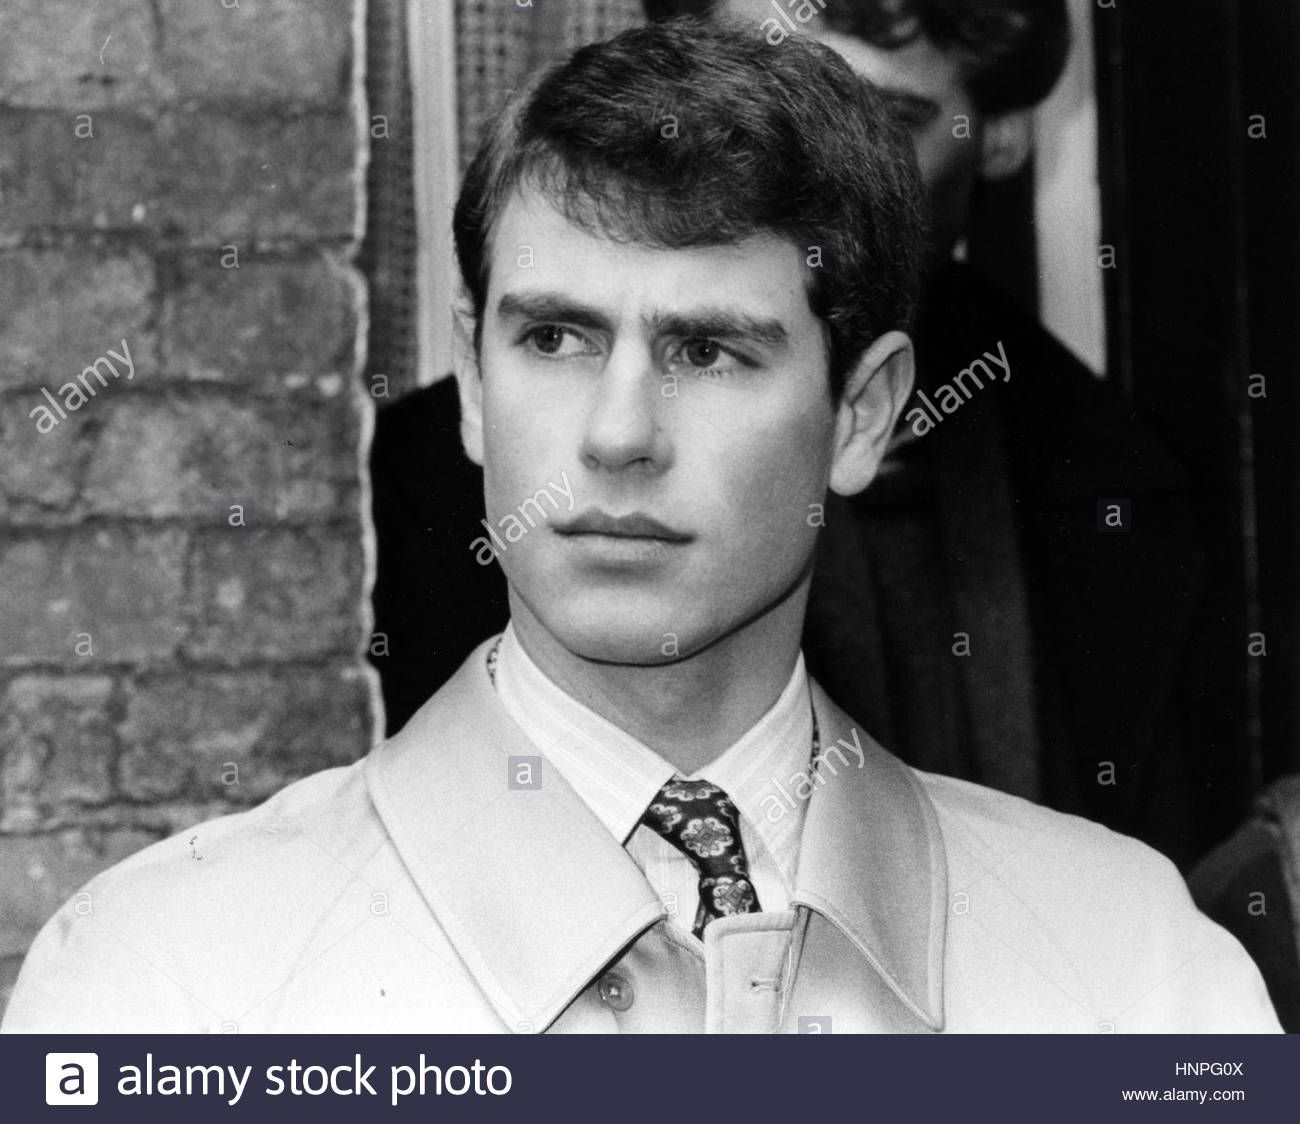 PRINCE EDWARD, Earl of Wessex about 1985 Stock Photo ...  Edward Earl Of Wessex Young